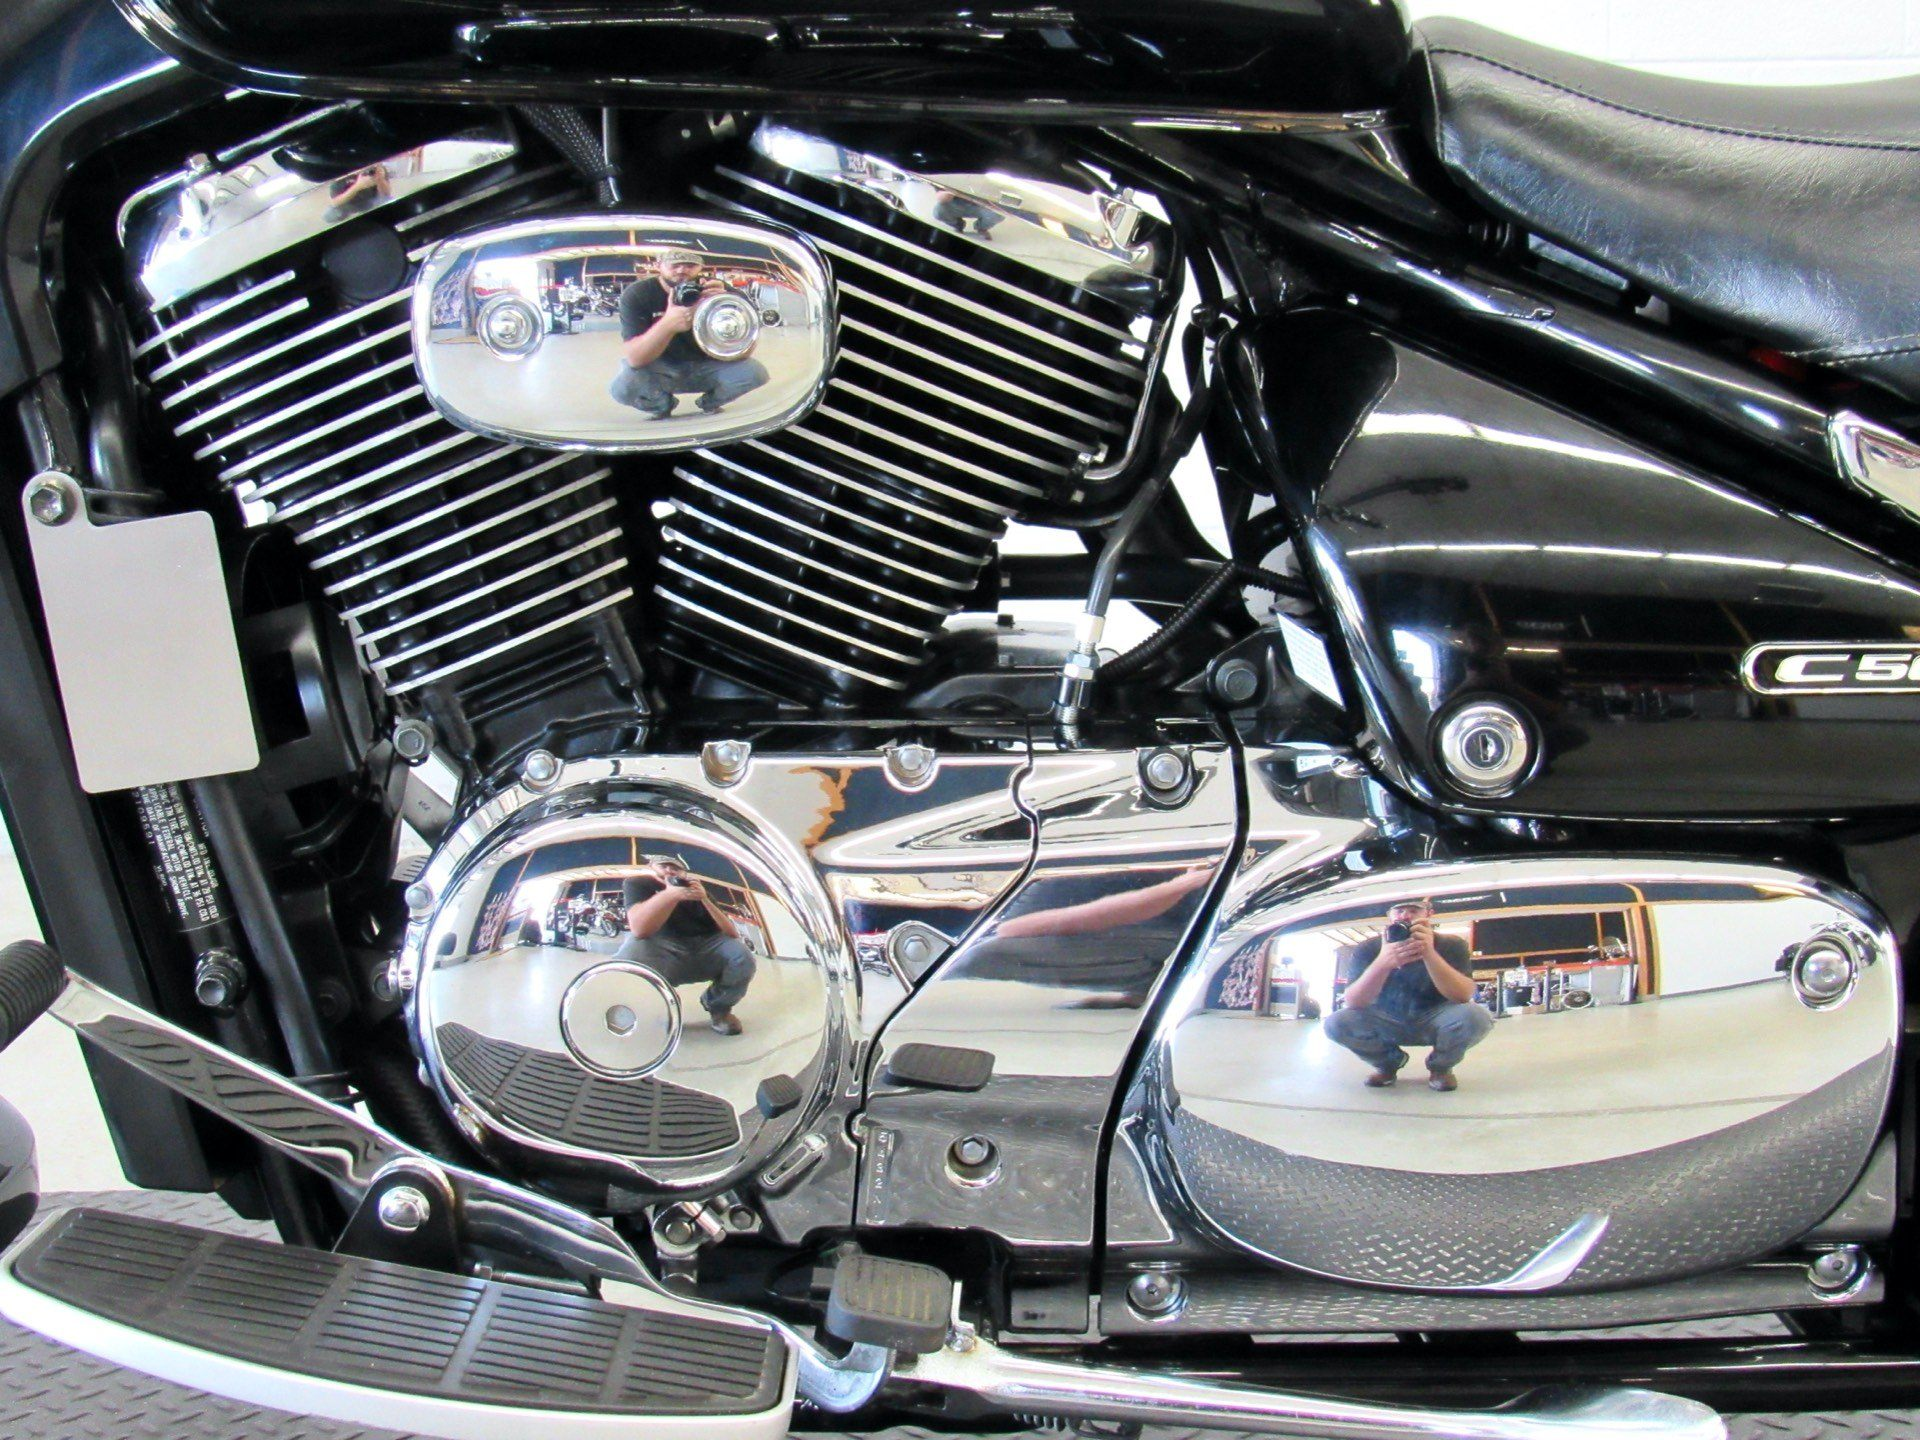 2008 Suzuki Boulevard C50 Black in Fredericksburg, Virginia - Photo 19